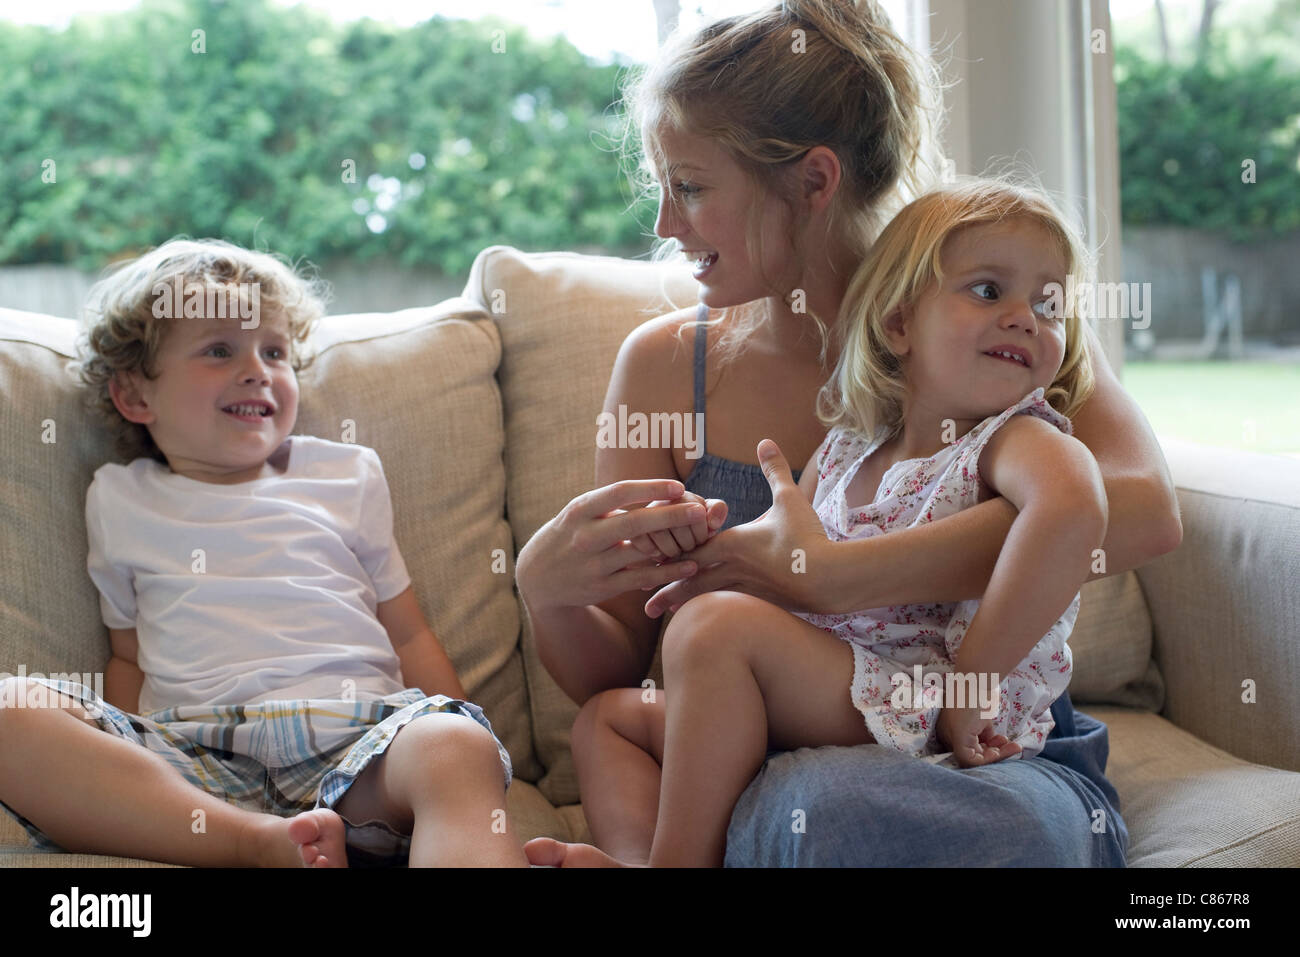 Mother and two young children sitting together on sofa - Stock Image